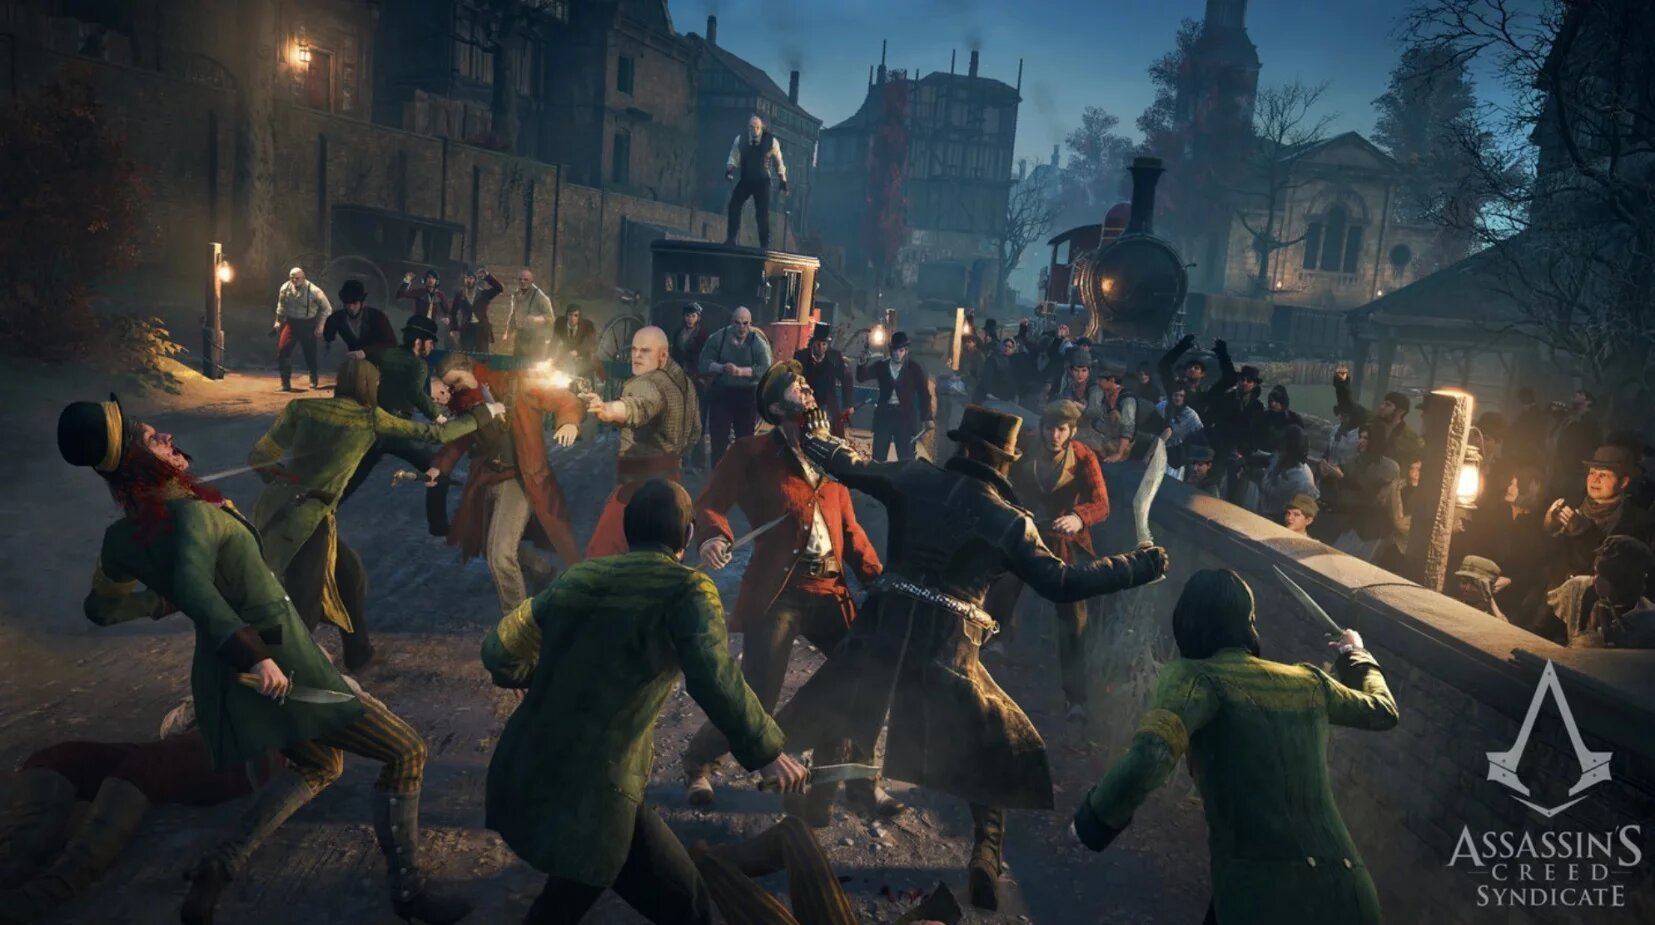 Assassin's Creed Syndicate gameplay tips